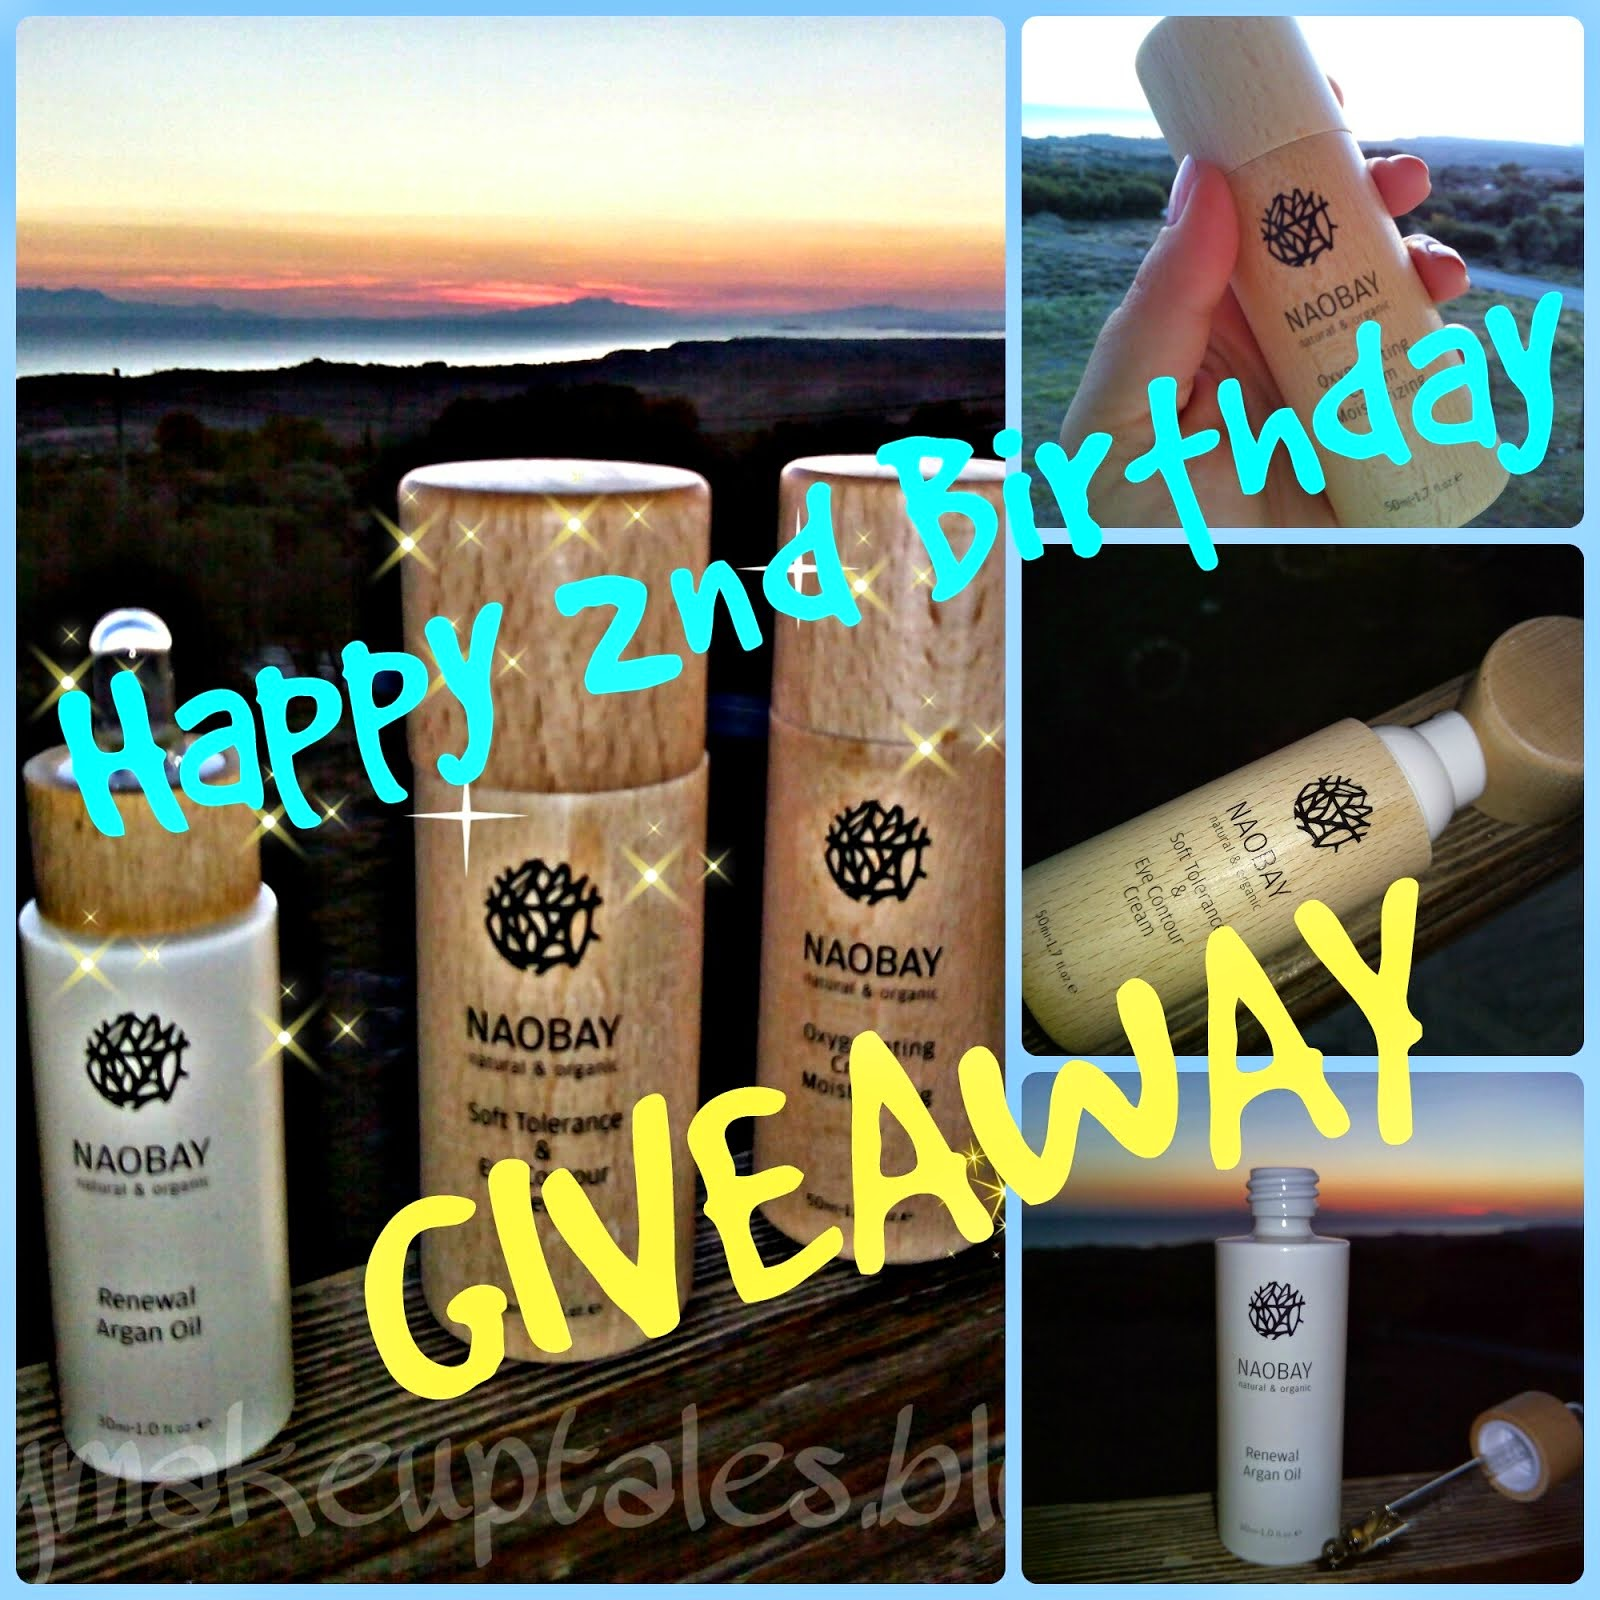 Happy 2nd Birthday Giveaway!